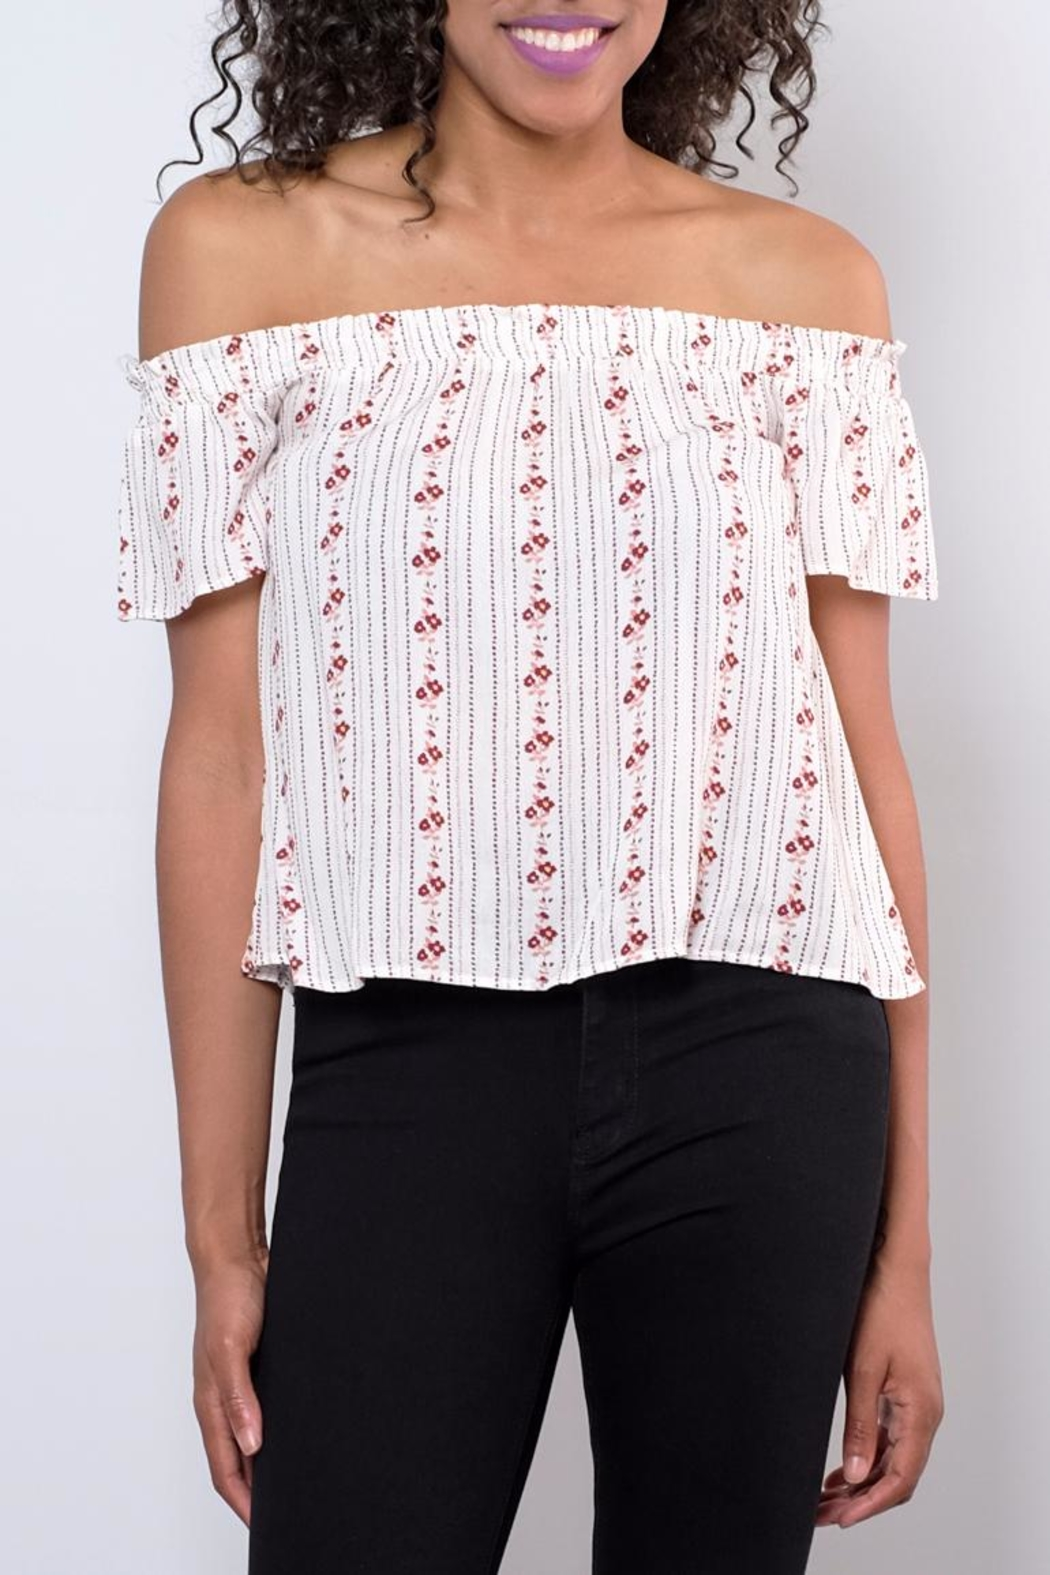 Be Cool Off-Shoulder Floral Top - Main Image